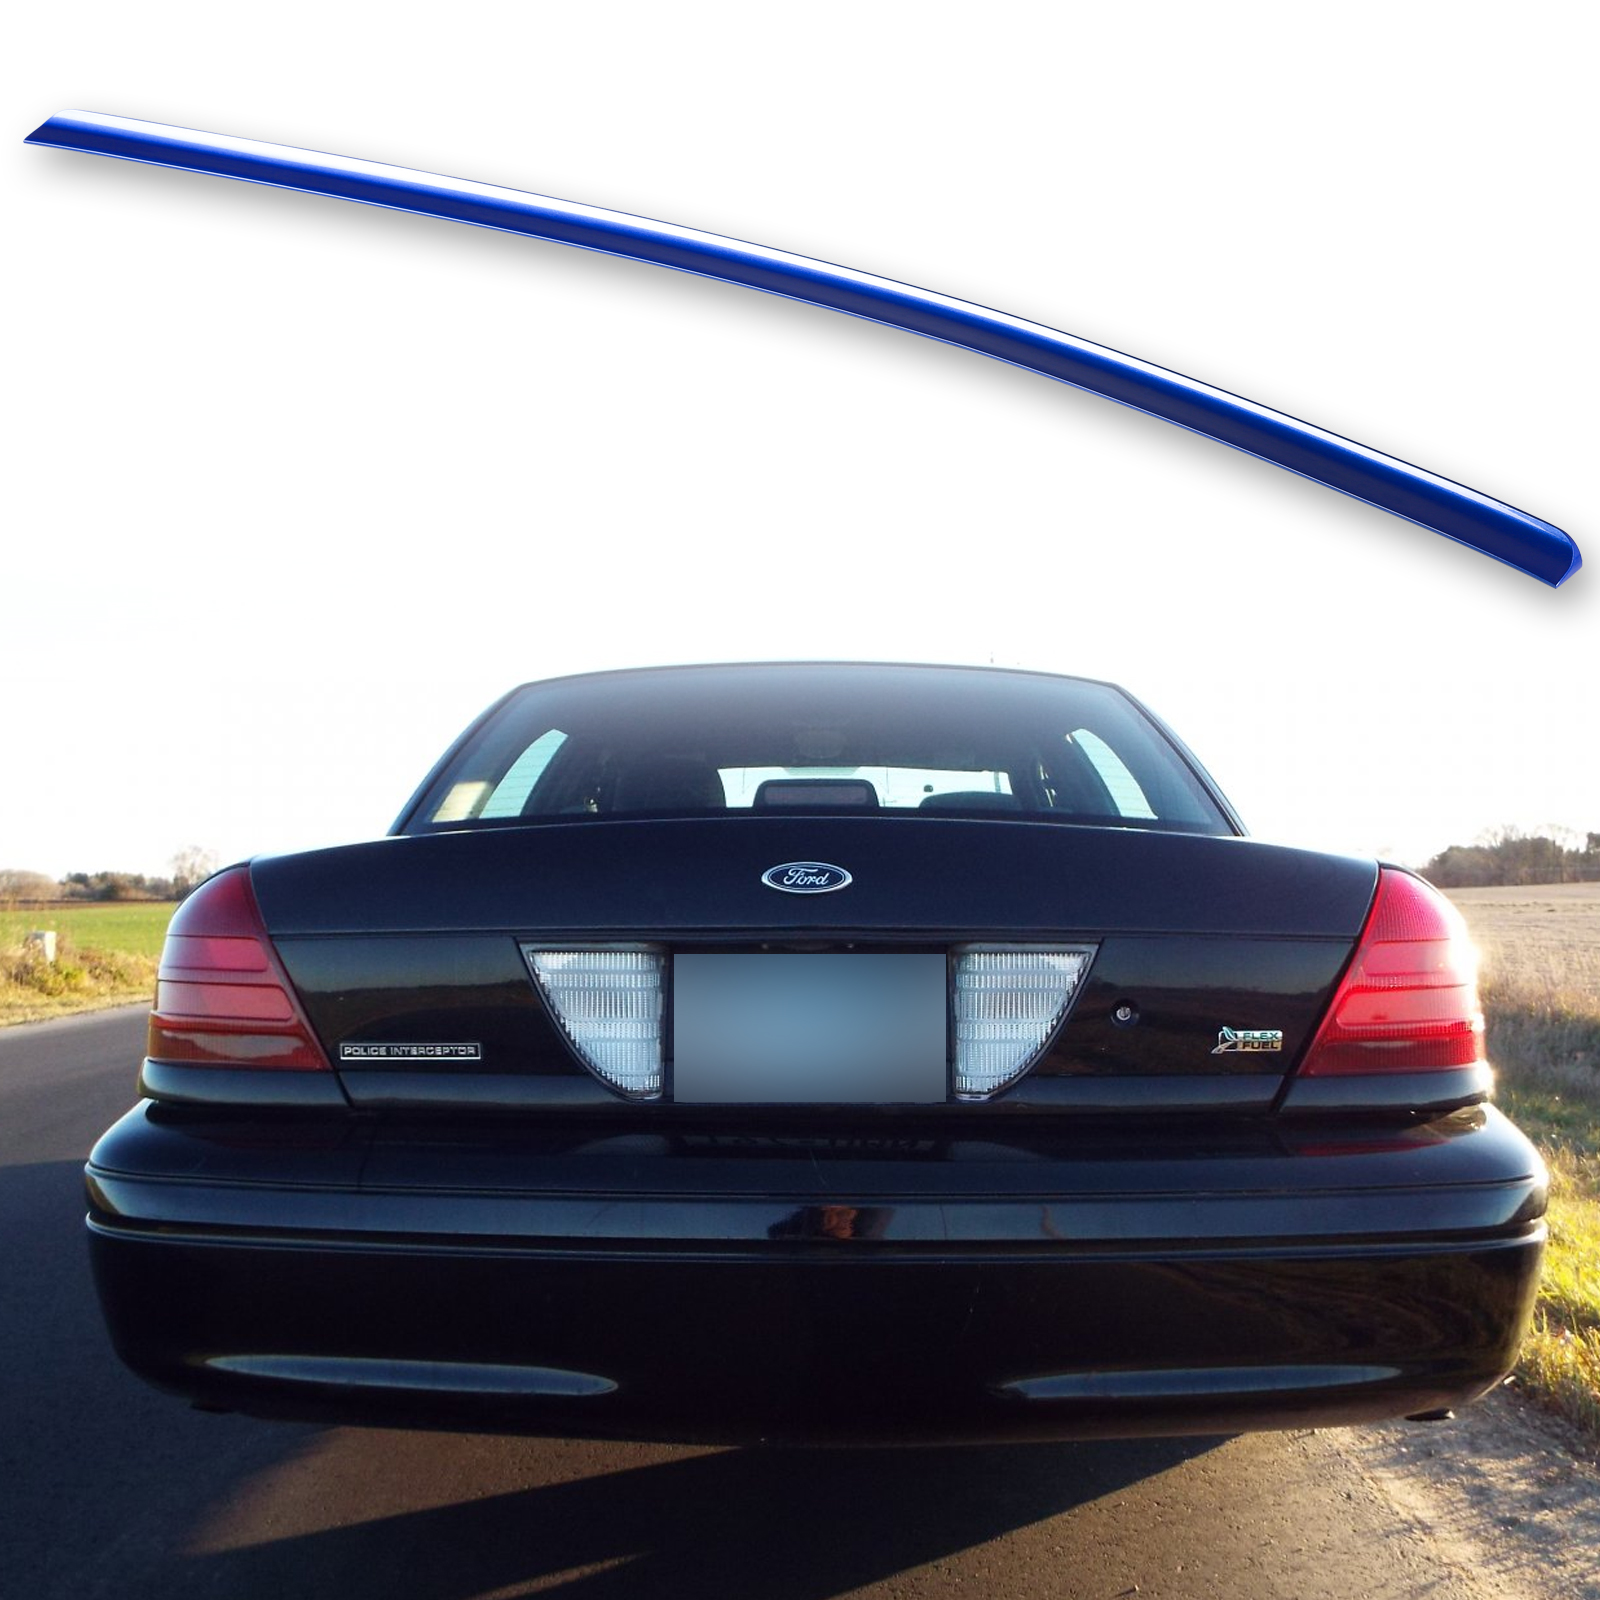 Painted Black Trunk Lip Spoiler R For Ford Crown Victoria Sedan 98-12 Gen 2